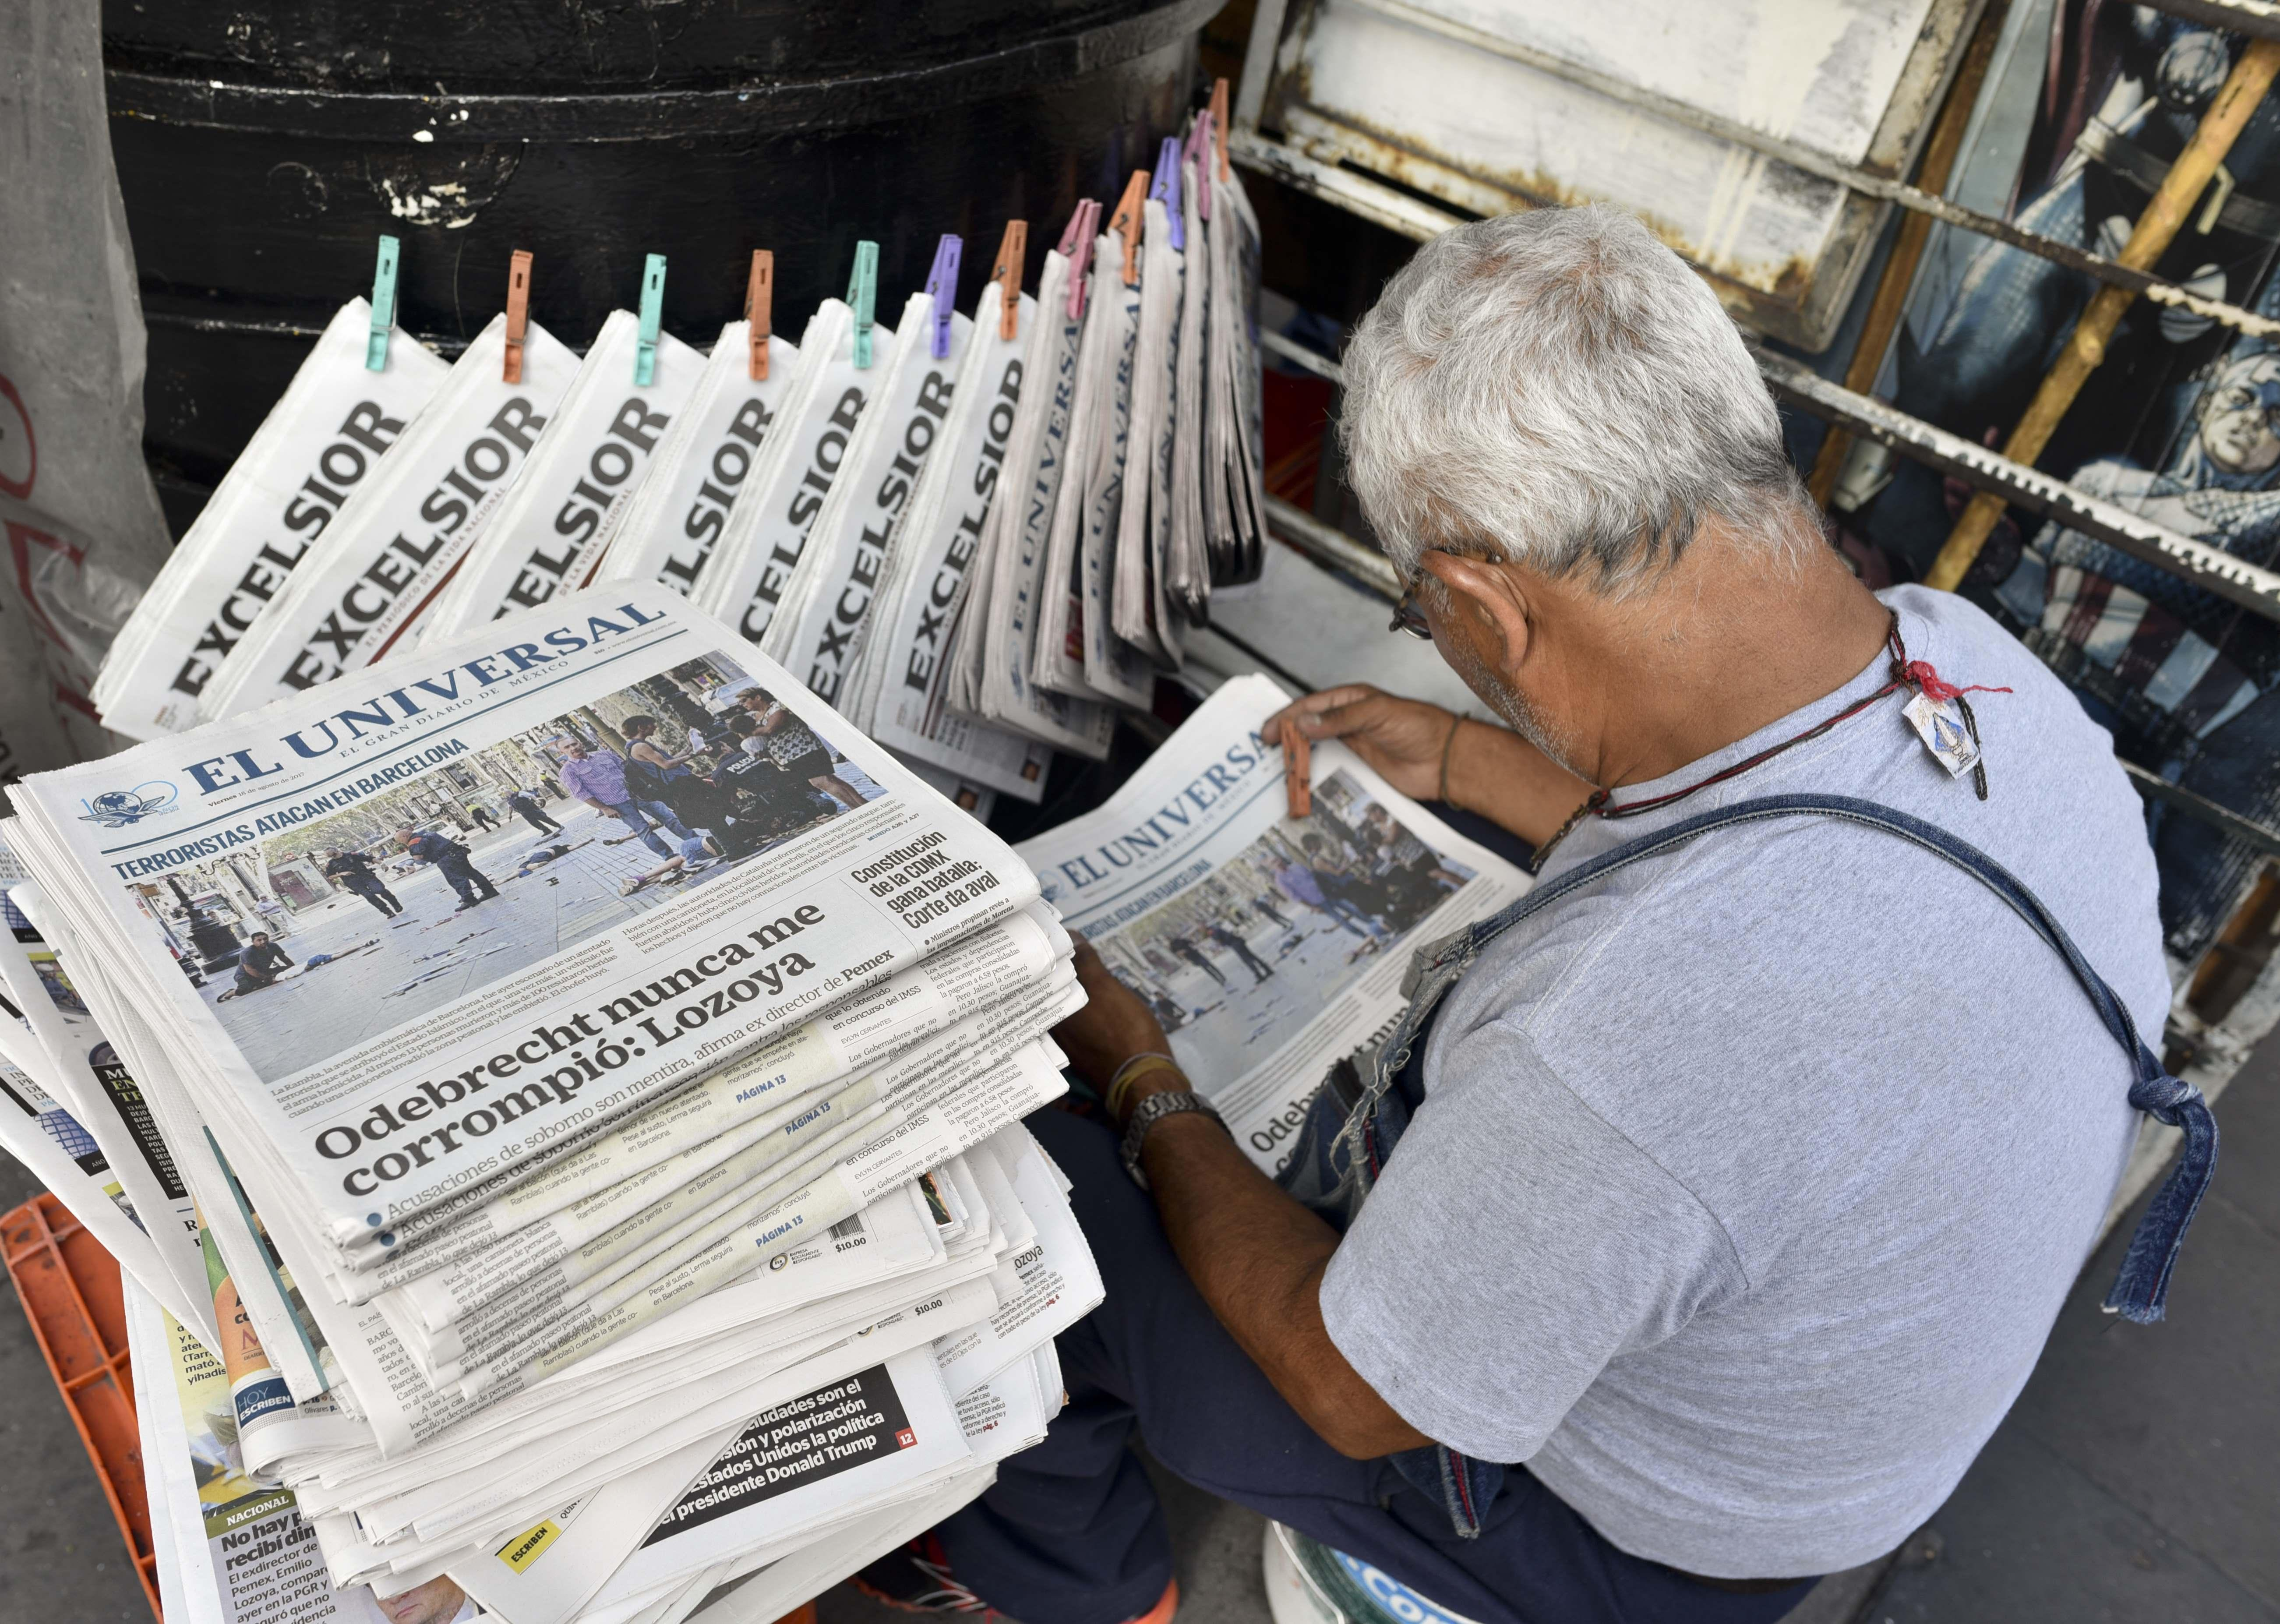 Reporter killed in Mexico was at least 9th journalist slain this year